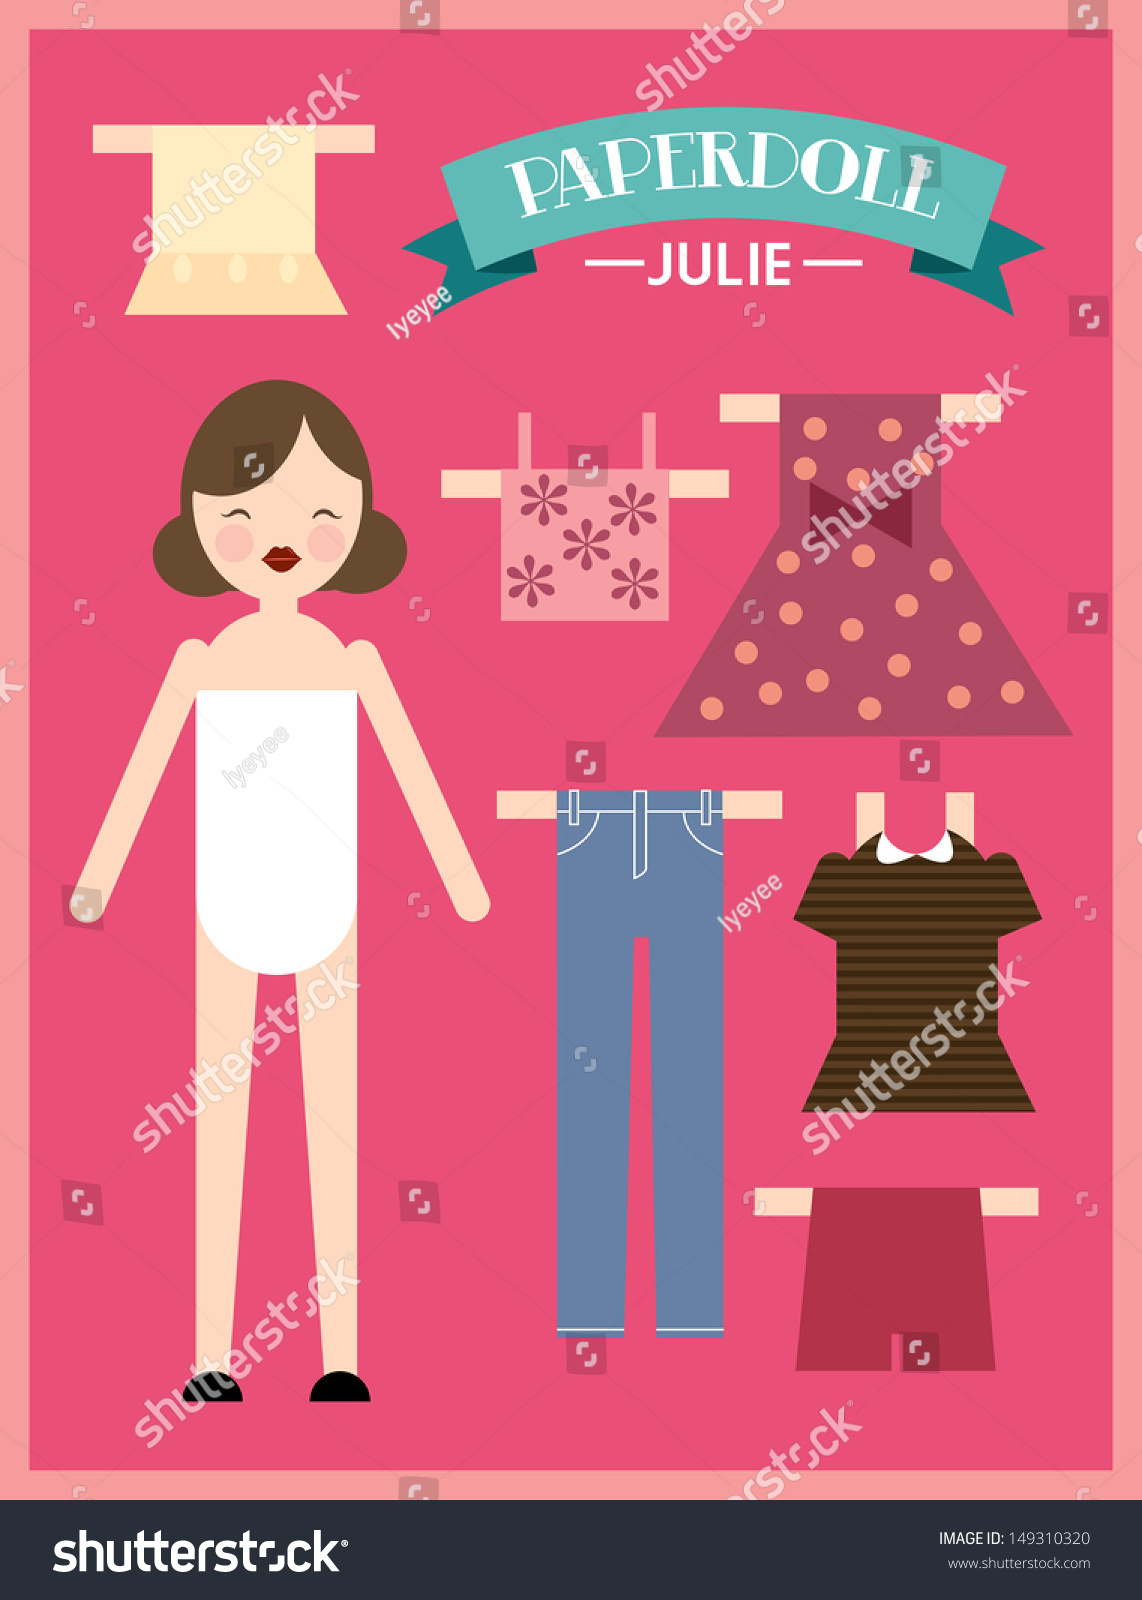 Paper doll woman template vector illustration 149310320 for Paper doll template woman